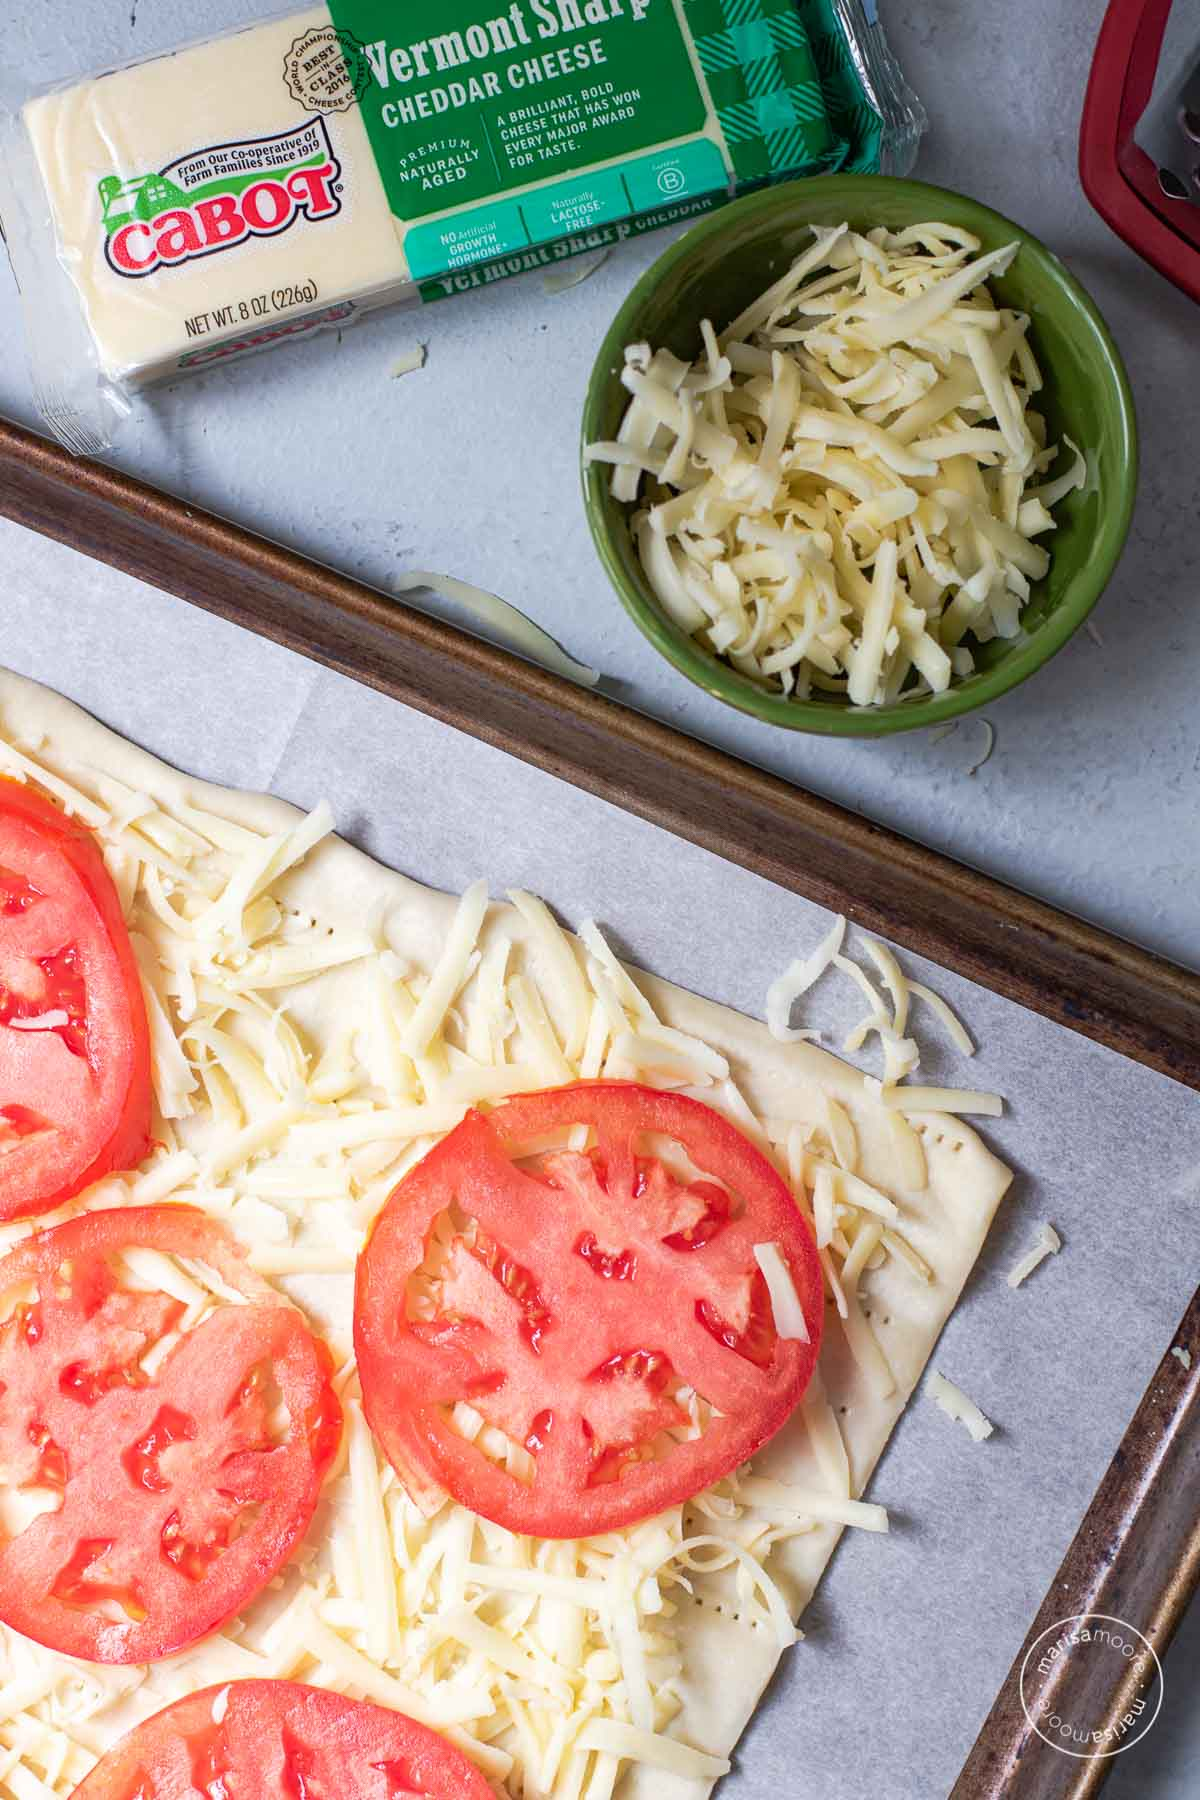 Puff pastry with cheese and tomato slices on top